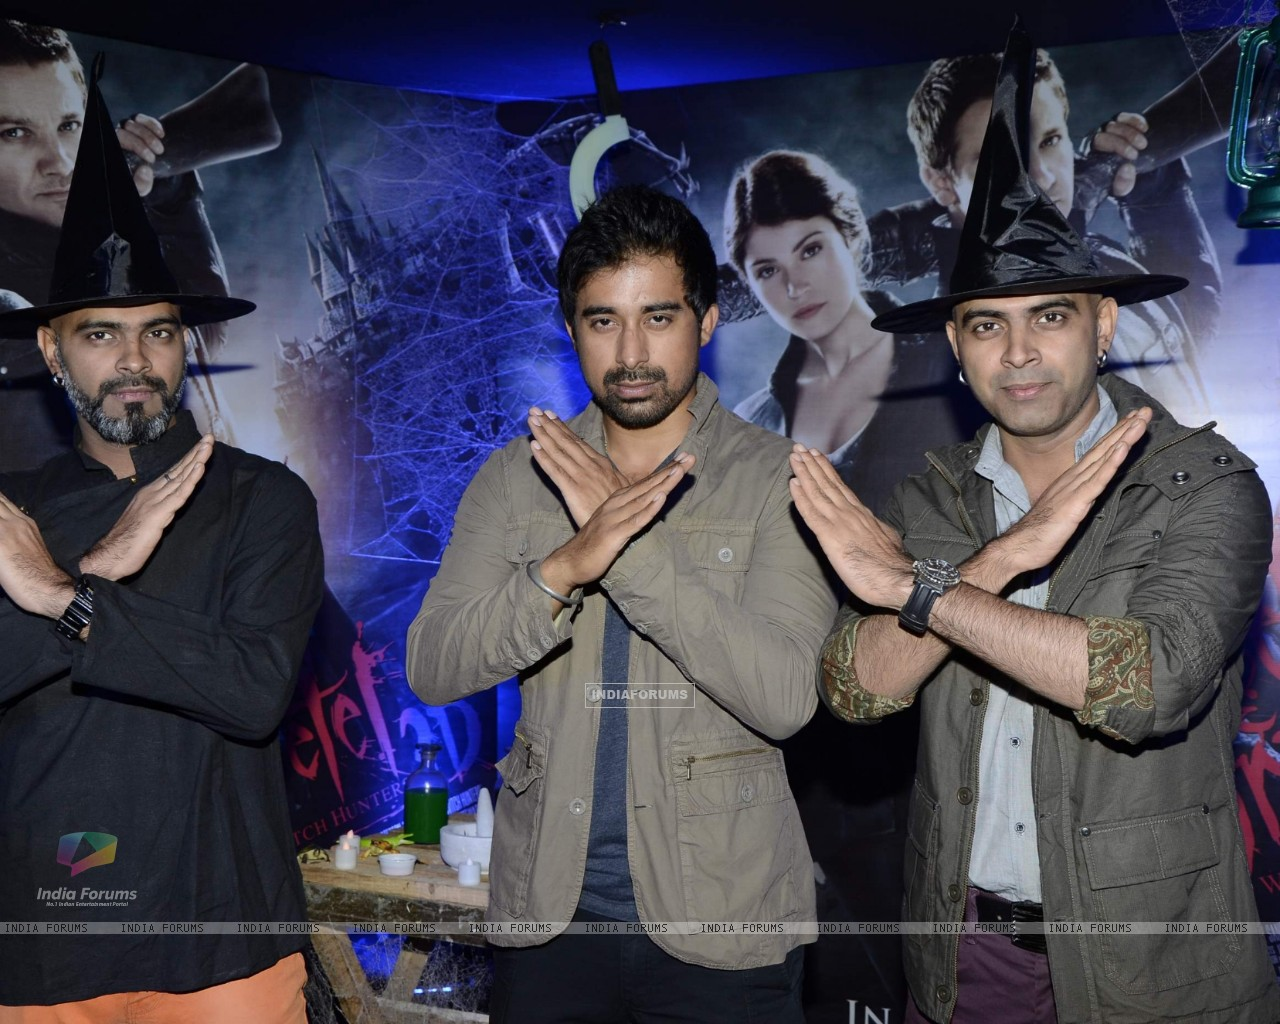 Bollywood actor Rannvijay Singh with Creative Head of Entertainment Colosceum Rajiv Lakshman and Senior Supervising Producer MTV Raghu Ram at the screening of 3D film Hansel and Gretel in PVR Juhu, Mumbai on Wednesday, January 30th, evening. (257233) size:1280x1024